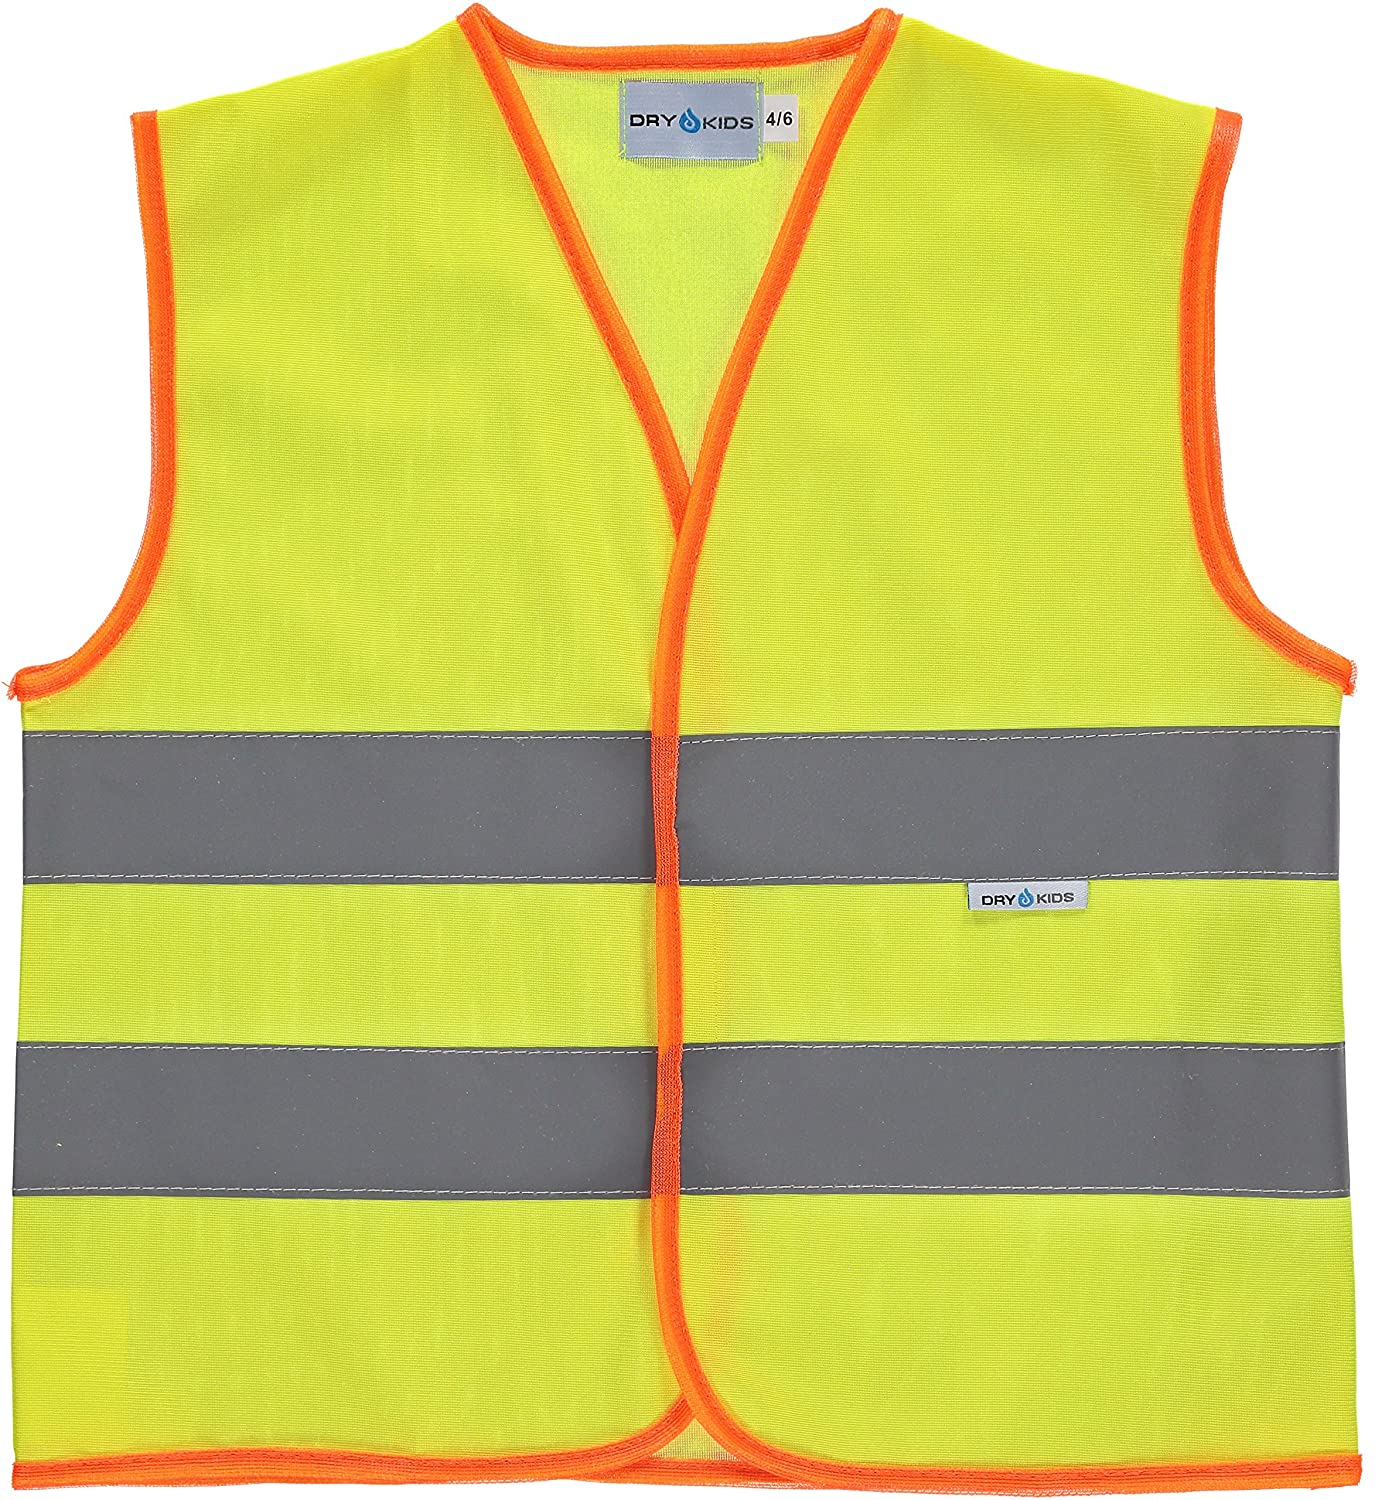 DRY KIDS Hi-Viz Vest, Be Safe and Be Seen, Ideal Road Safety